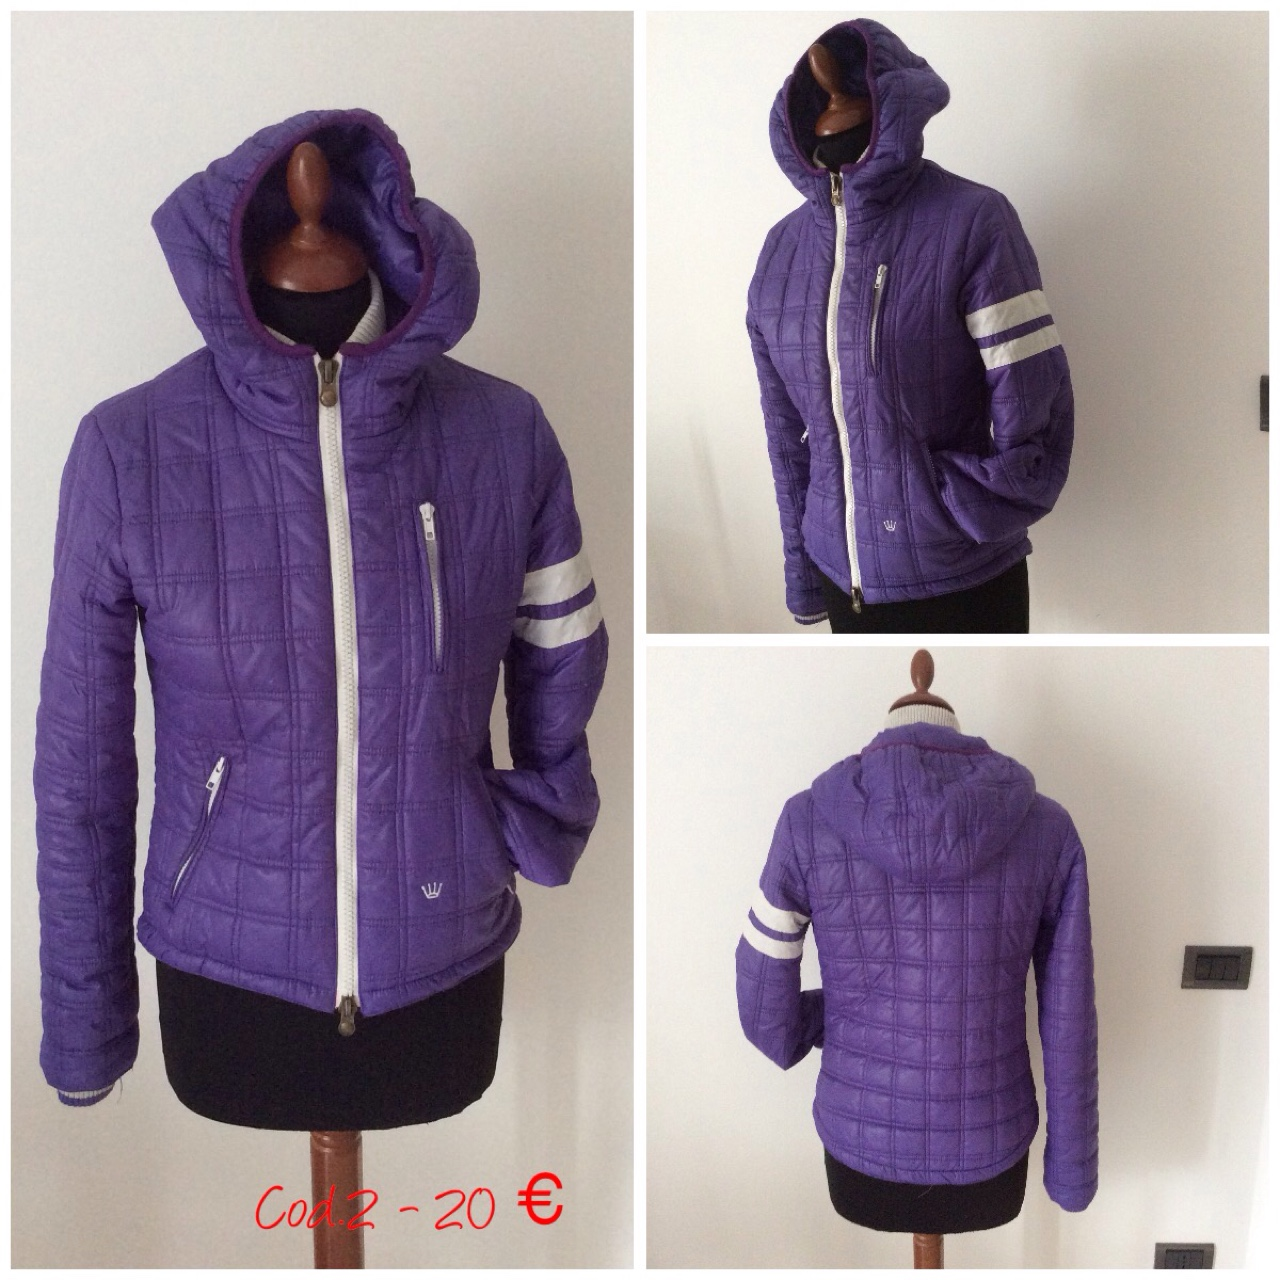 best website f6ae3 bfd92 Piumino Scout Tg. S. - Depop